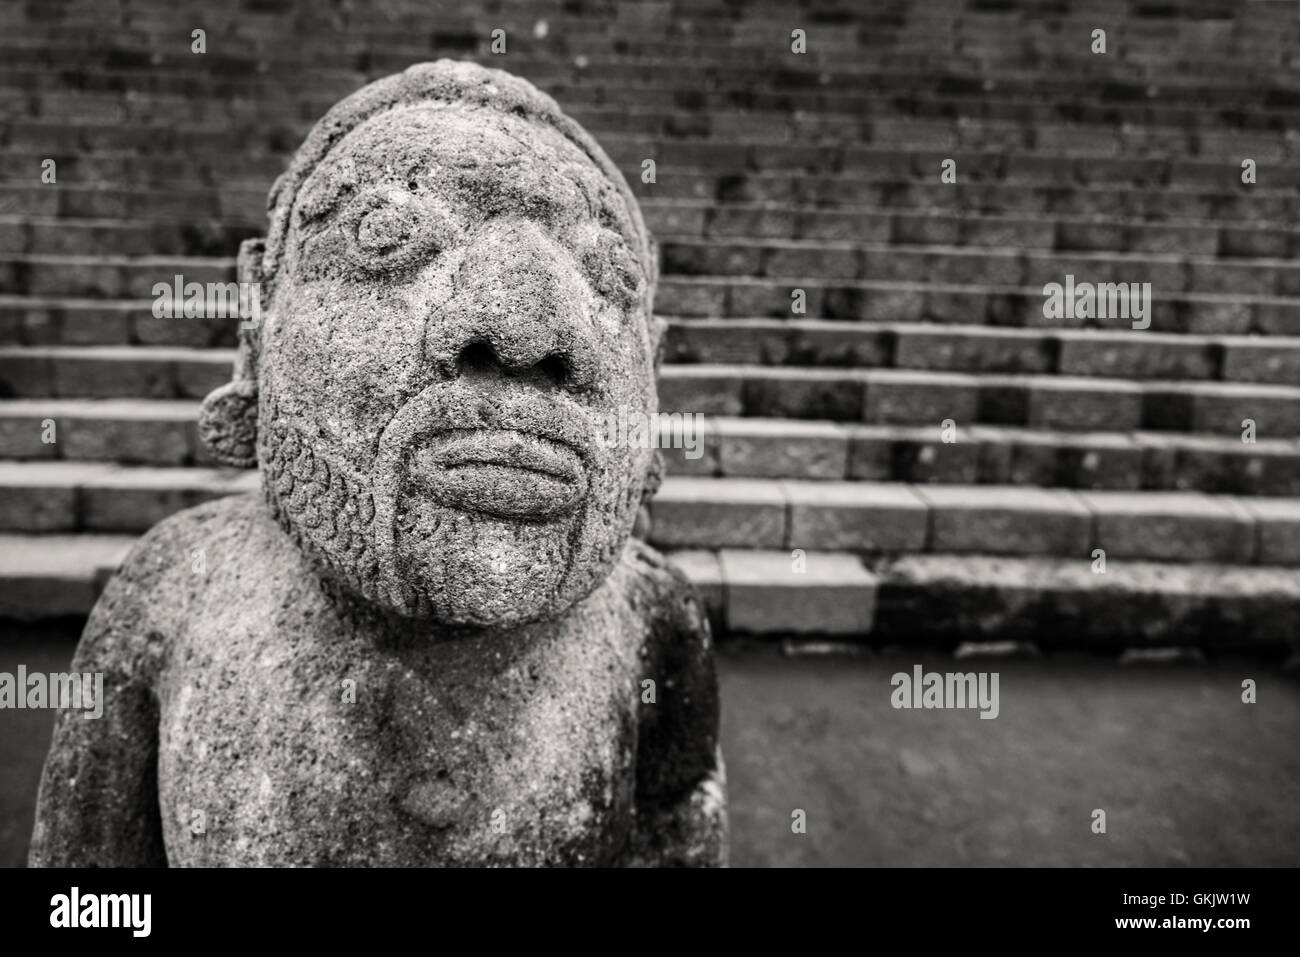 Stone sculpture of man from hindu temple Cetho, Jawa, Indonesia - Stock Image